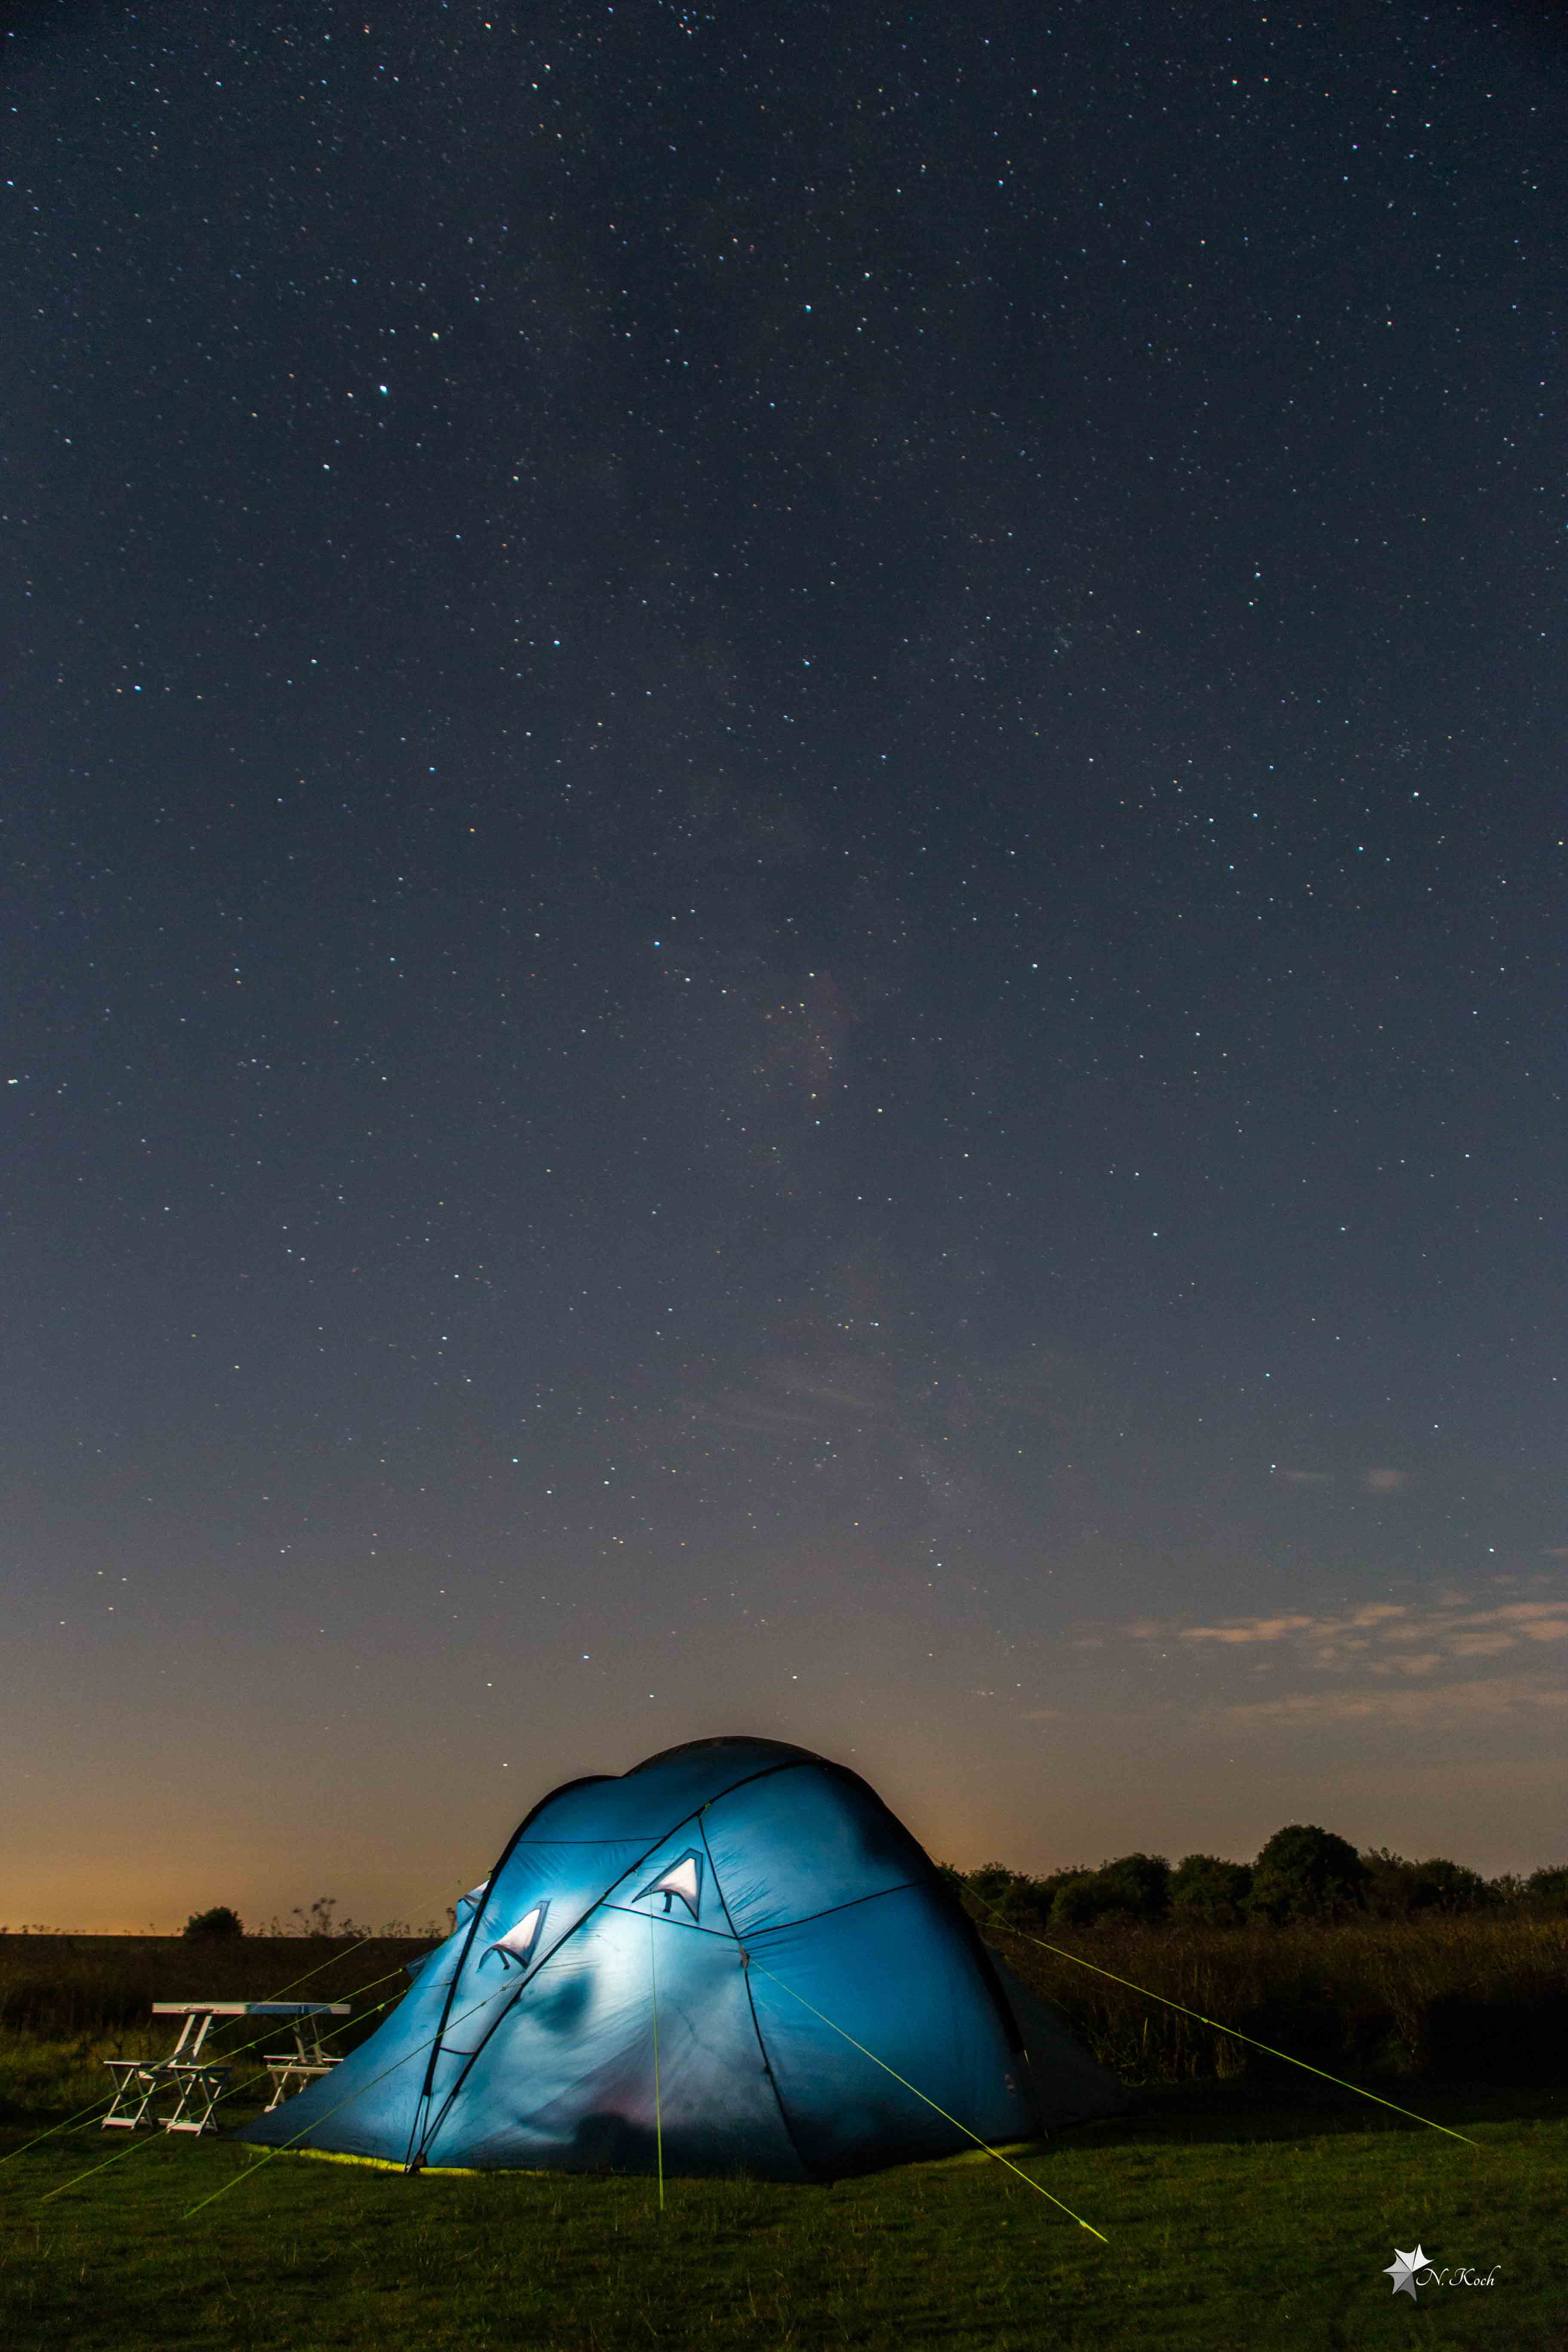 2015, Norderney | The tent under the stars